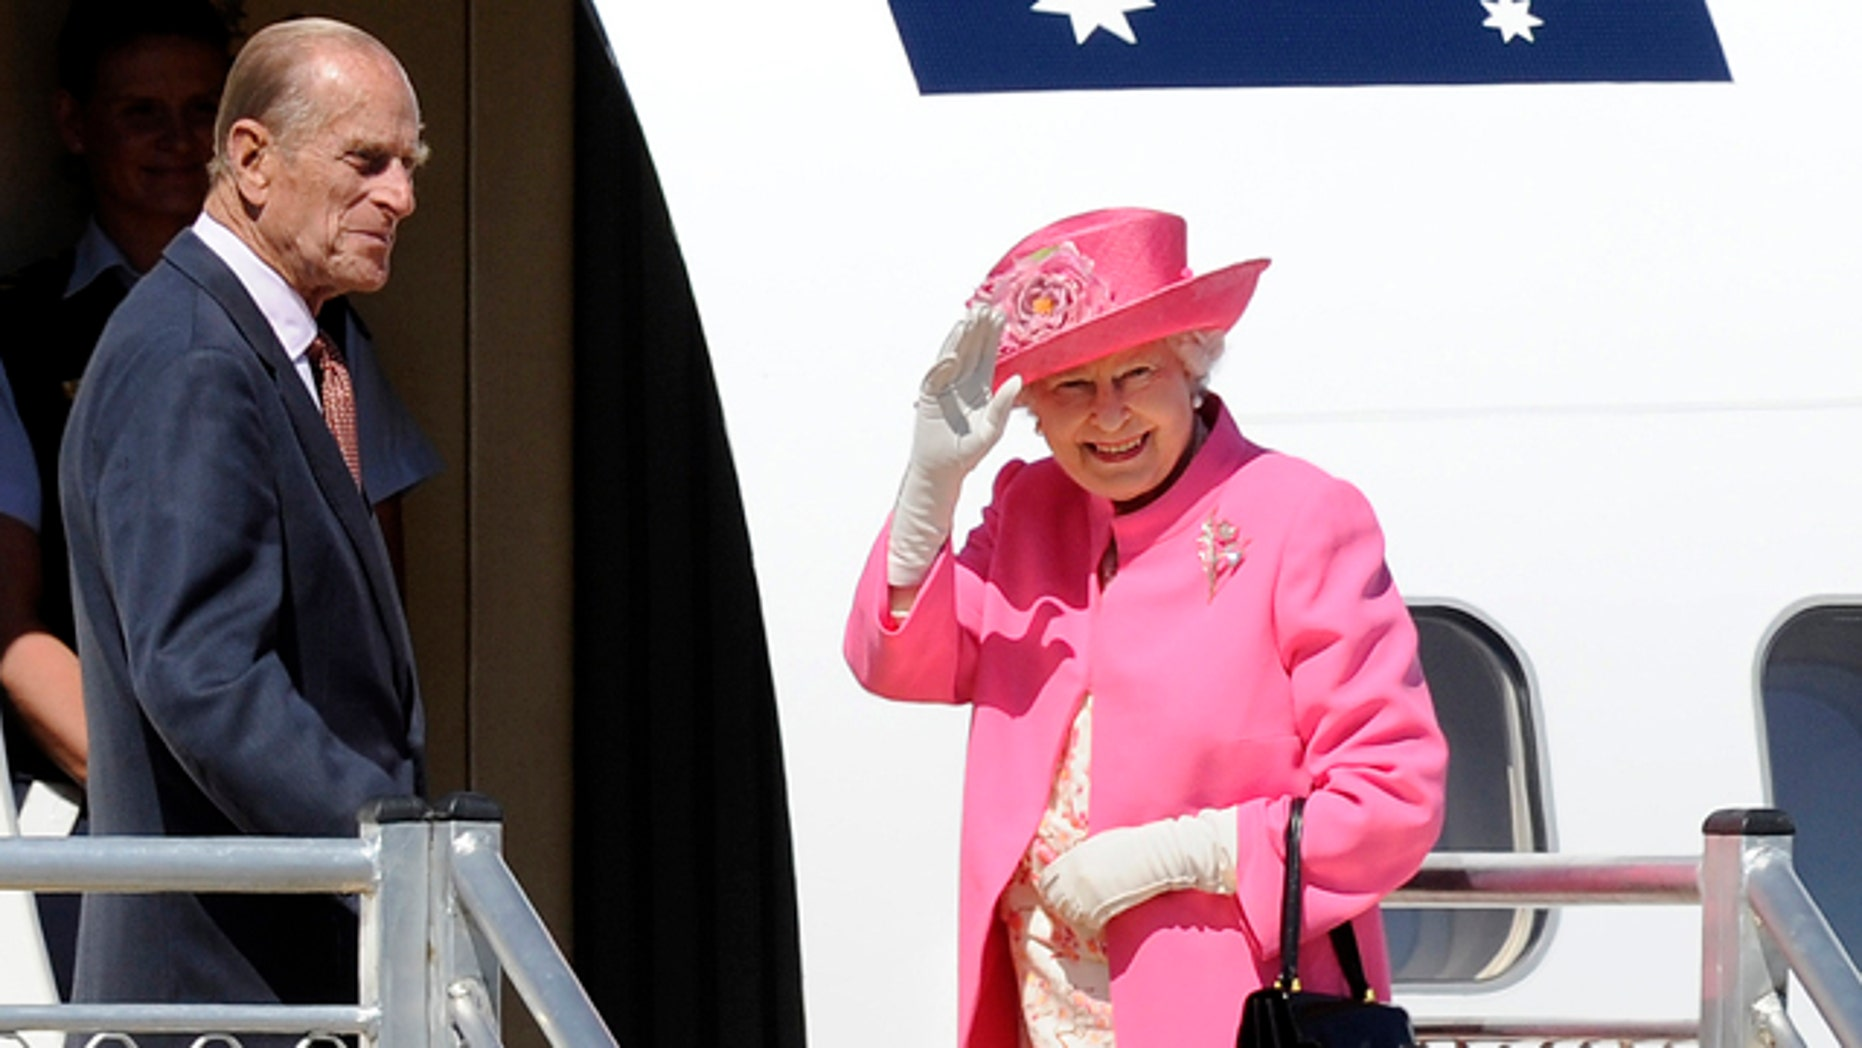 FILE - In this Oct. 26, 2011 file photo, Britain's Queen Elizabeth II, right, and her husband Prince Philip board a plane flying to Perth from Melbourne airport, Australia, on their way to attend the Commonwealth heads of government meeting in Perth. (AP Photo/Andrew Brownbill, File)